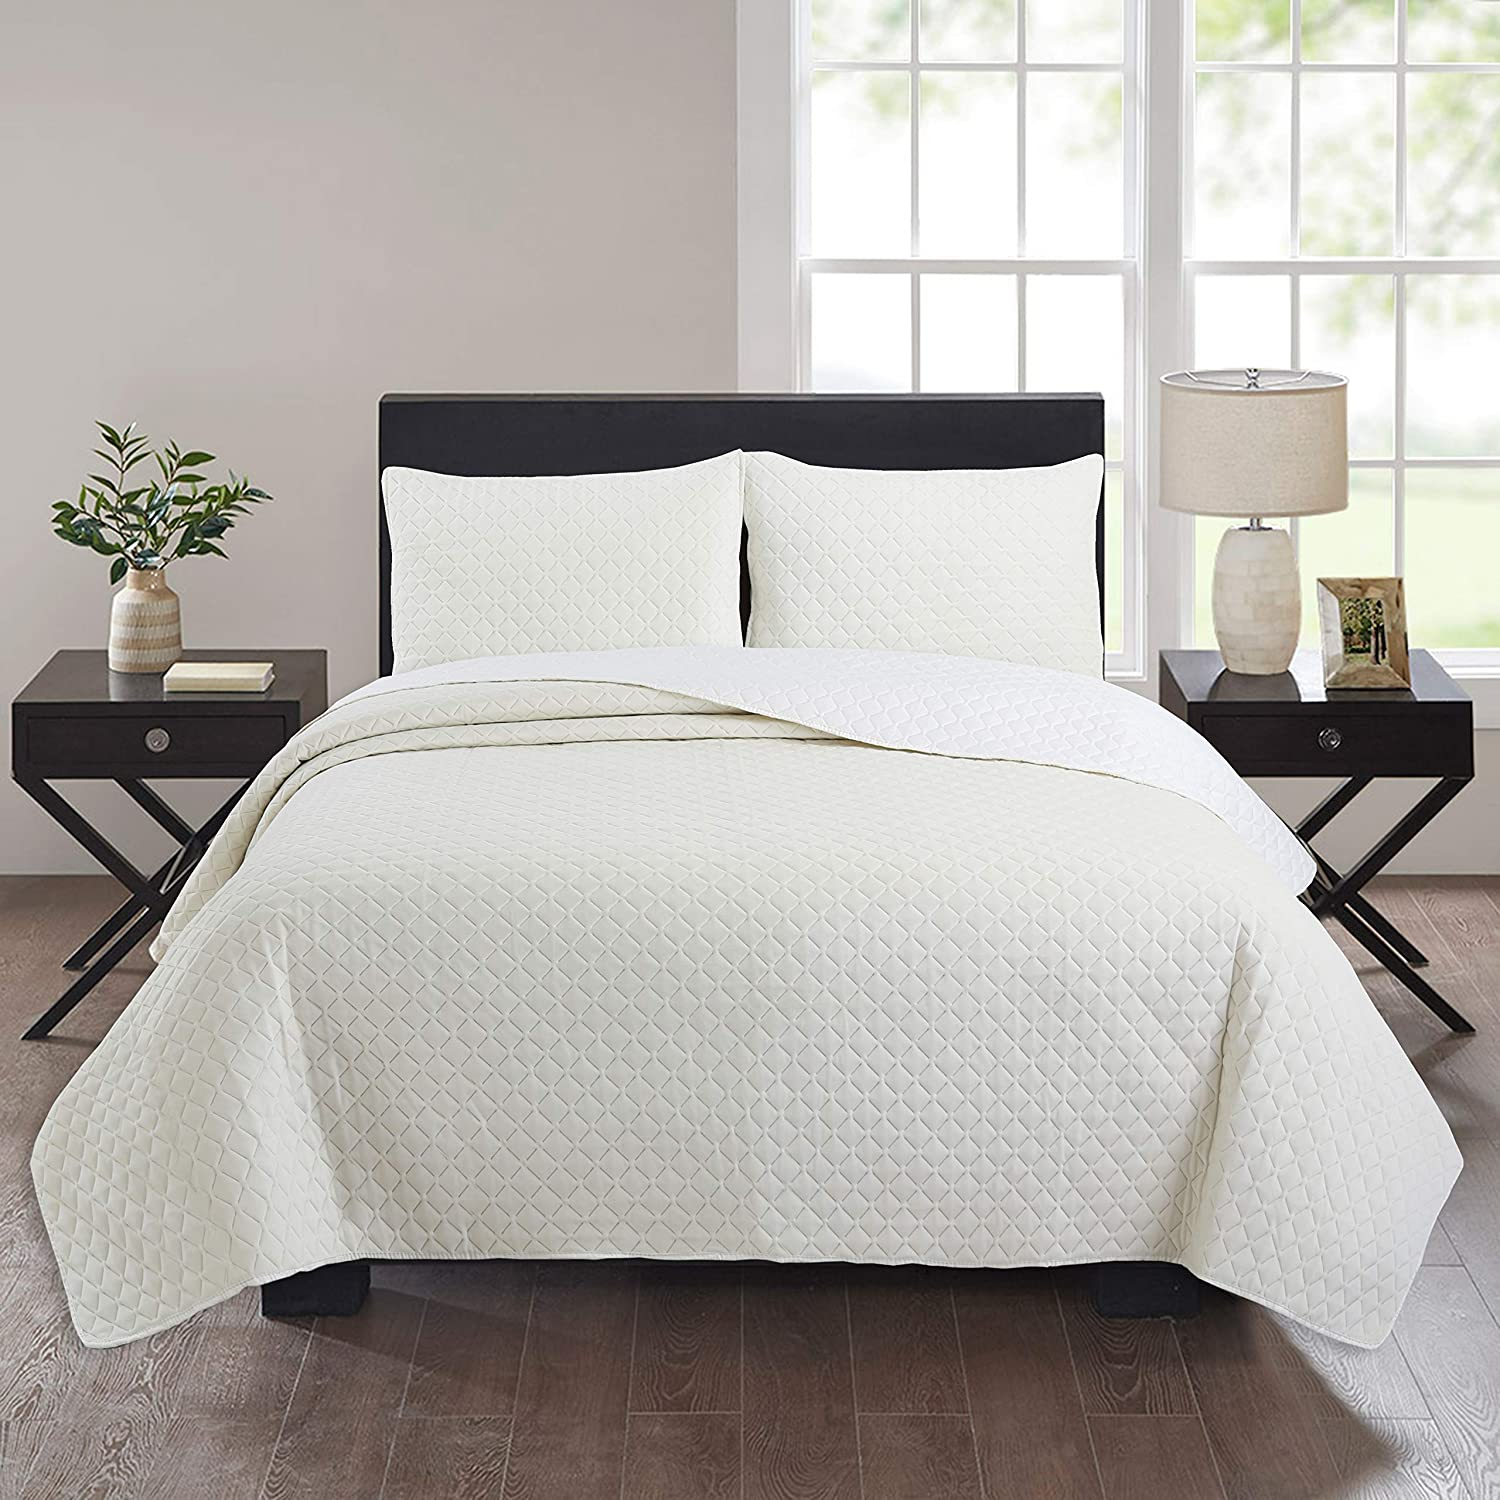 Charcole NIUD/ÉCOR HOME 3-Piece Quilt Set Basket Weave Pattern Bedspread Full//Queen Soft Microfiber Lightweight Coverlet for All Season